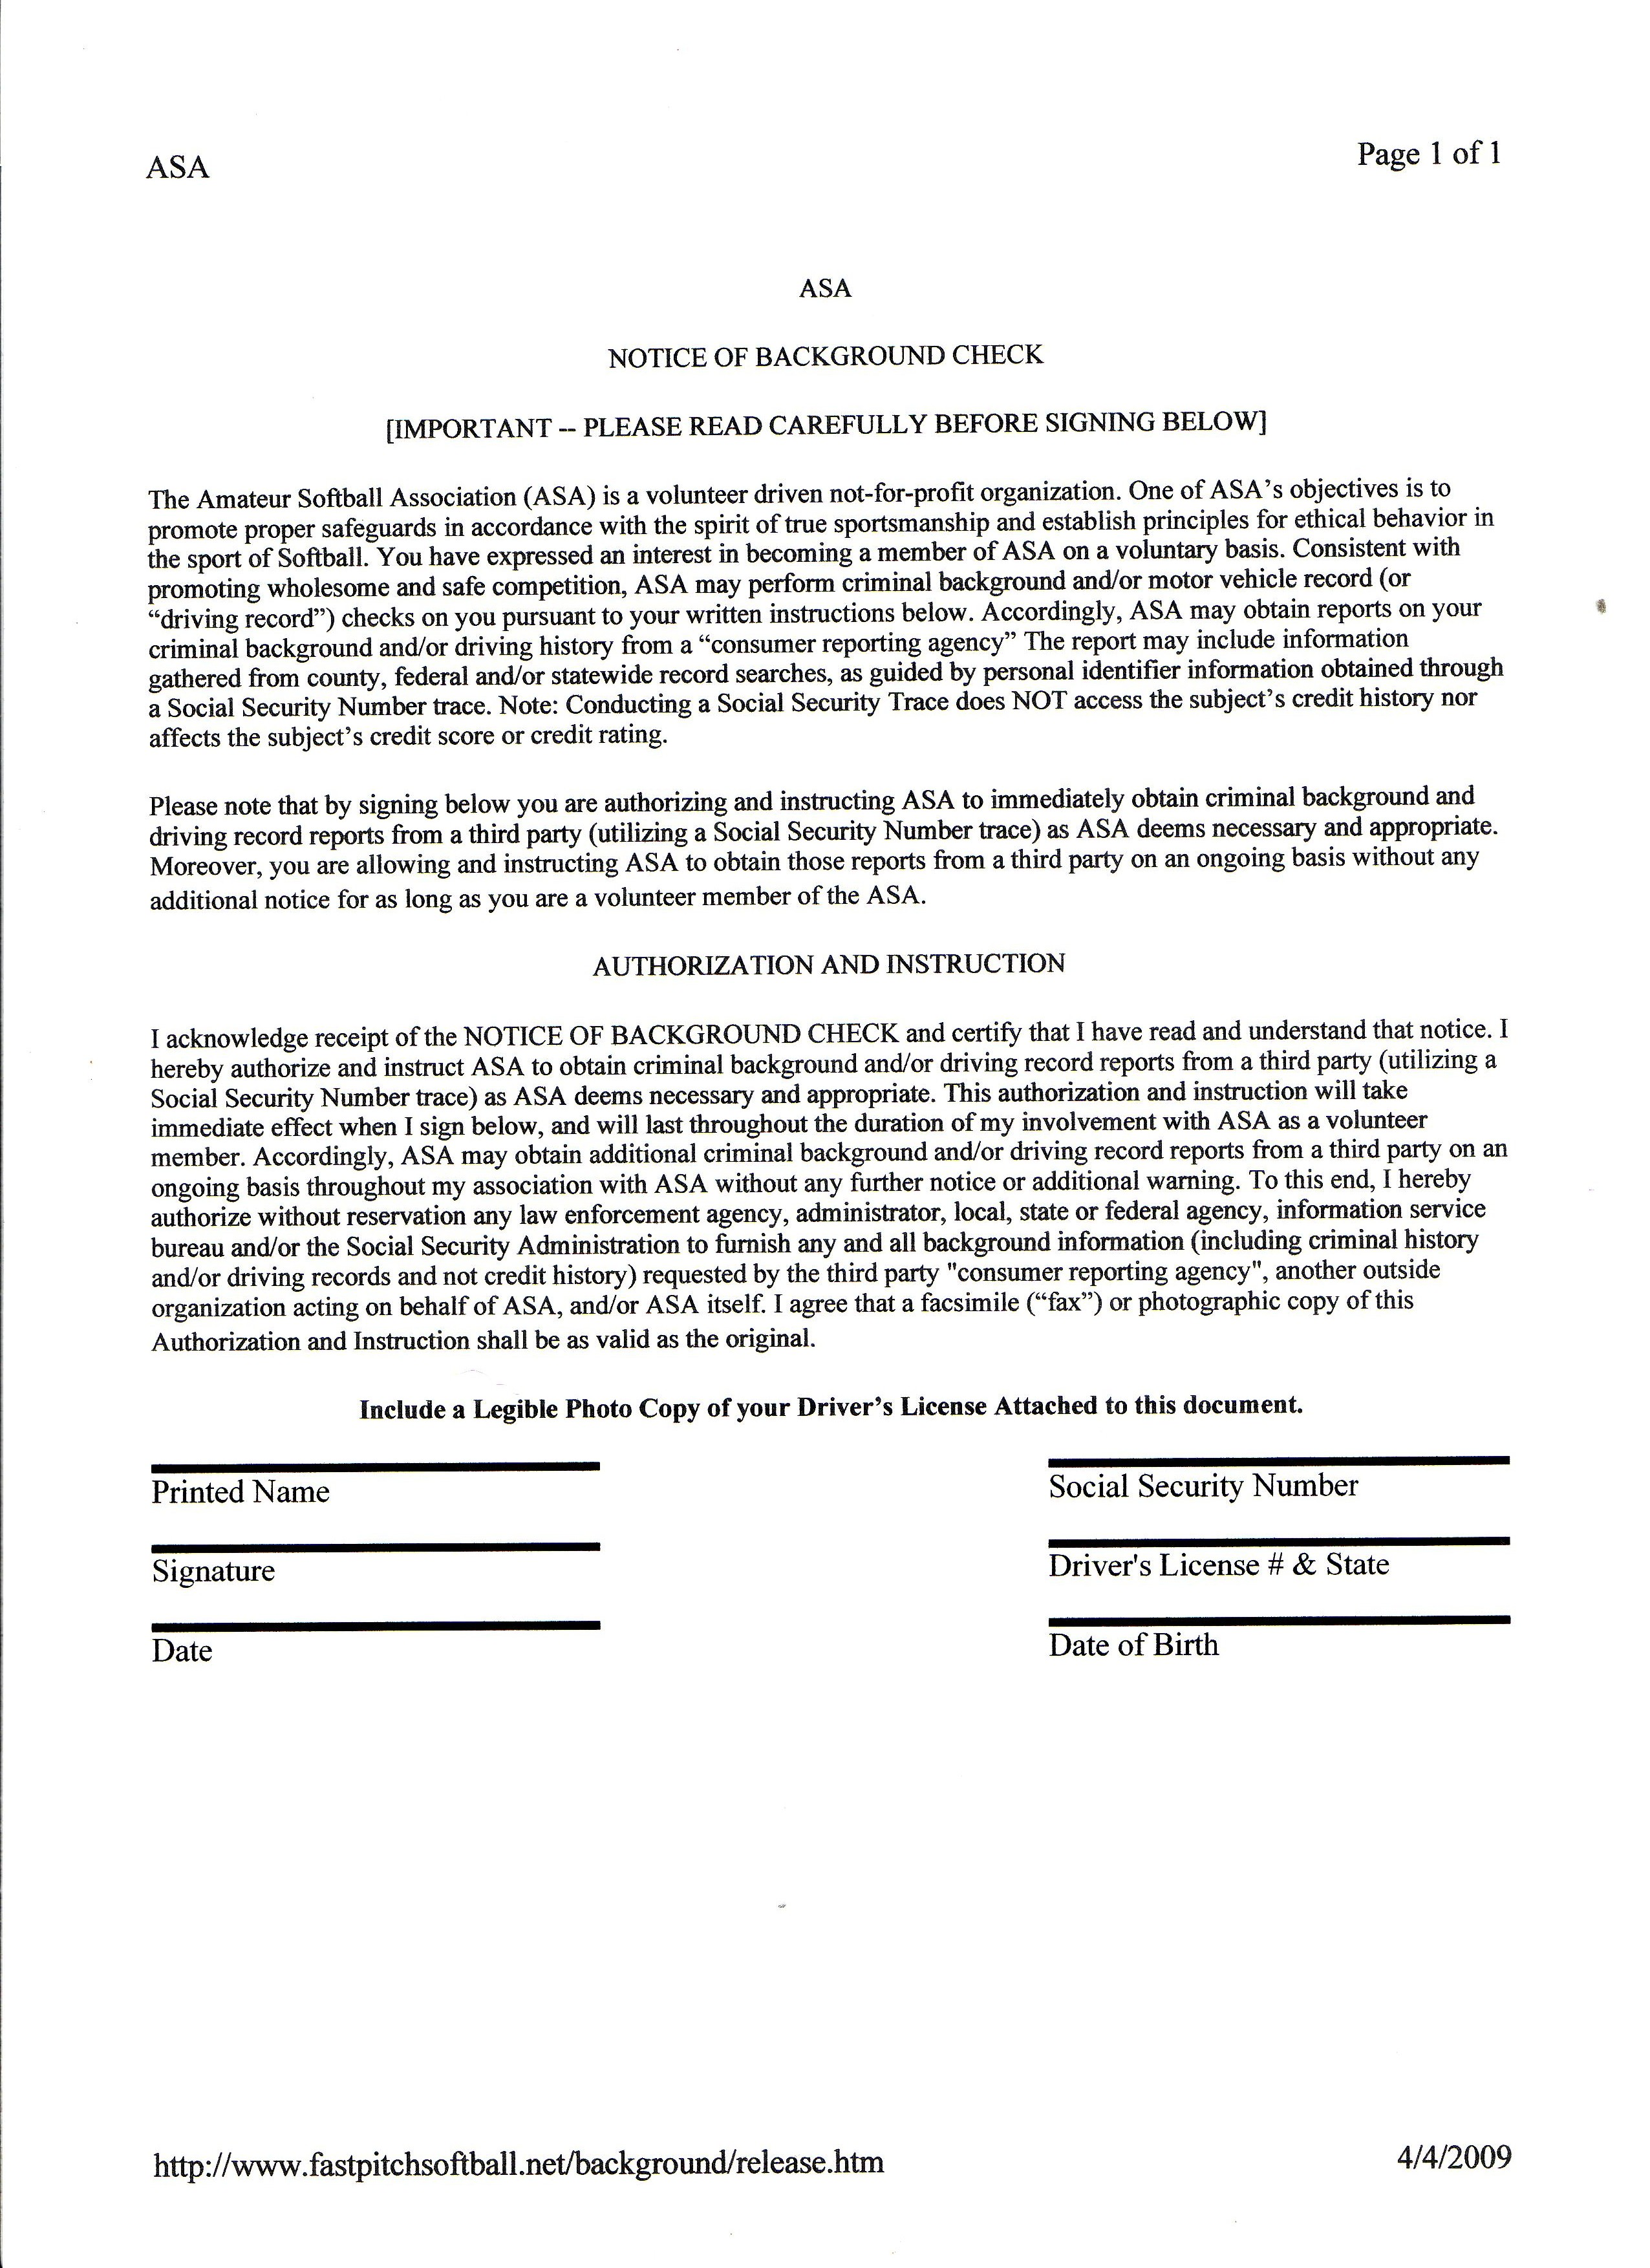 ASA Background Check Authorization Form